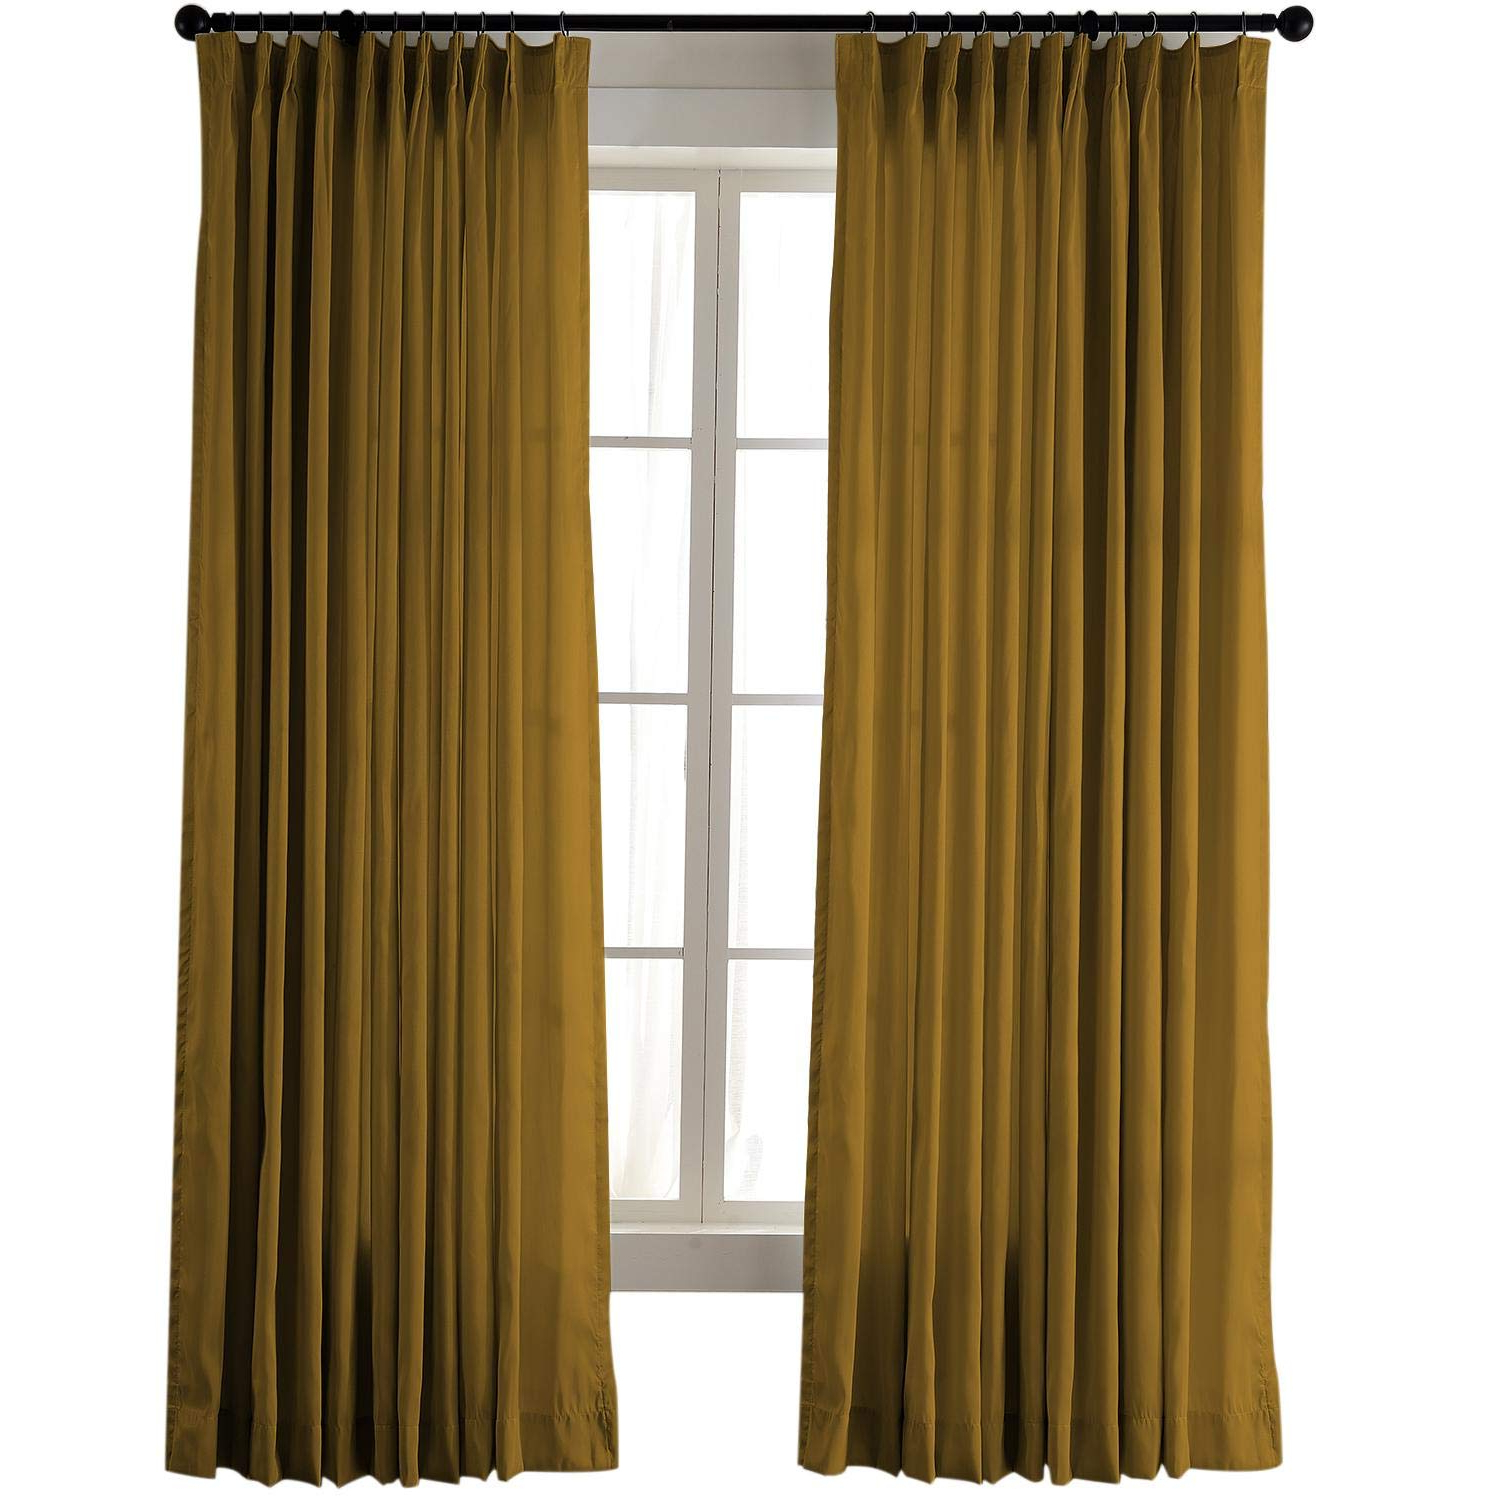 Popular Flax Gold Vintage Faux Textured Silk Single Curtain Panels For Amazon: Chadmade Vintage Textured Extra Wide Faux (View 8 of 23)